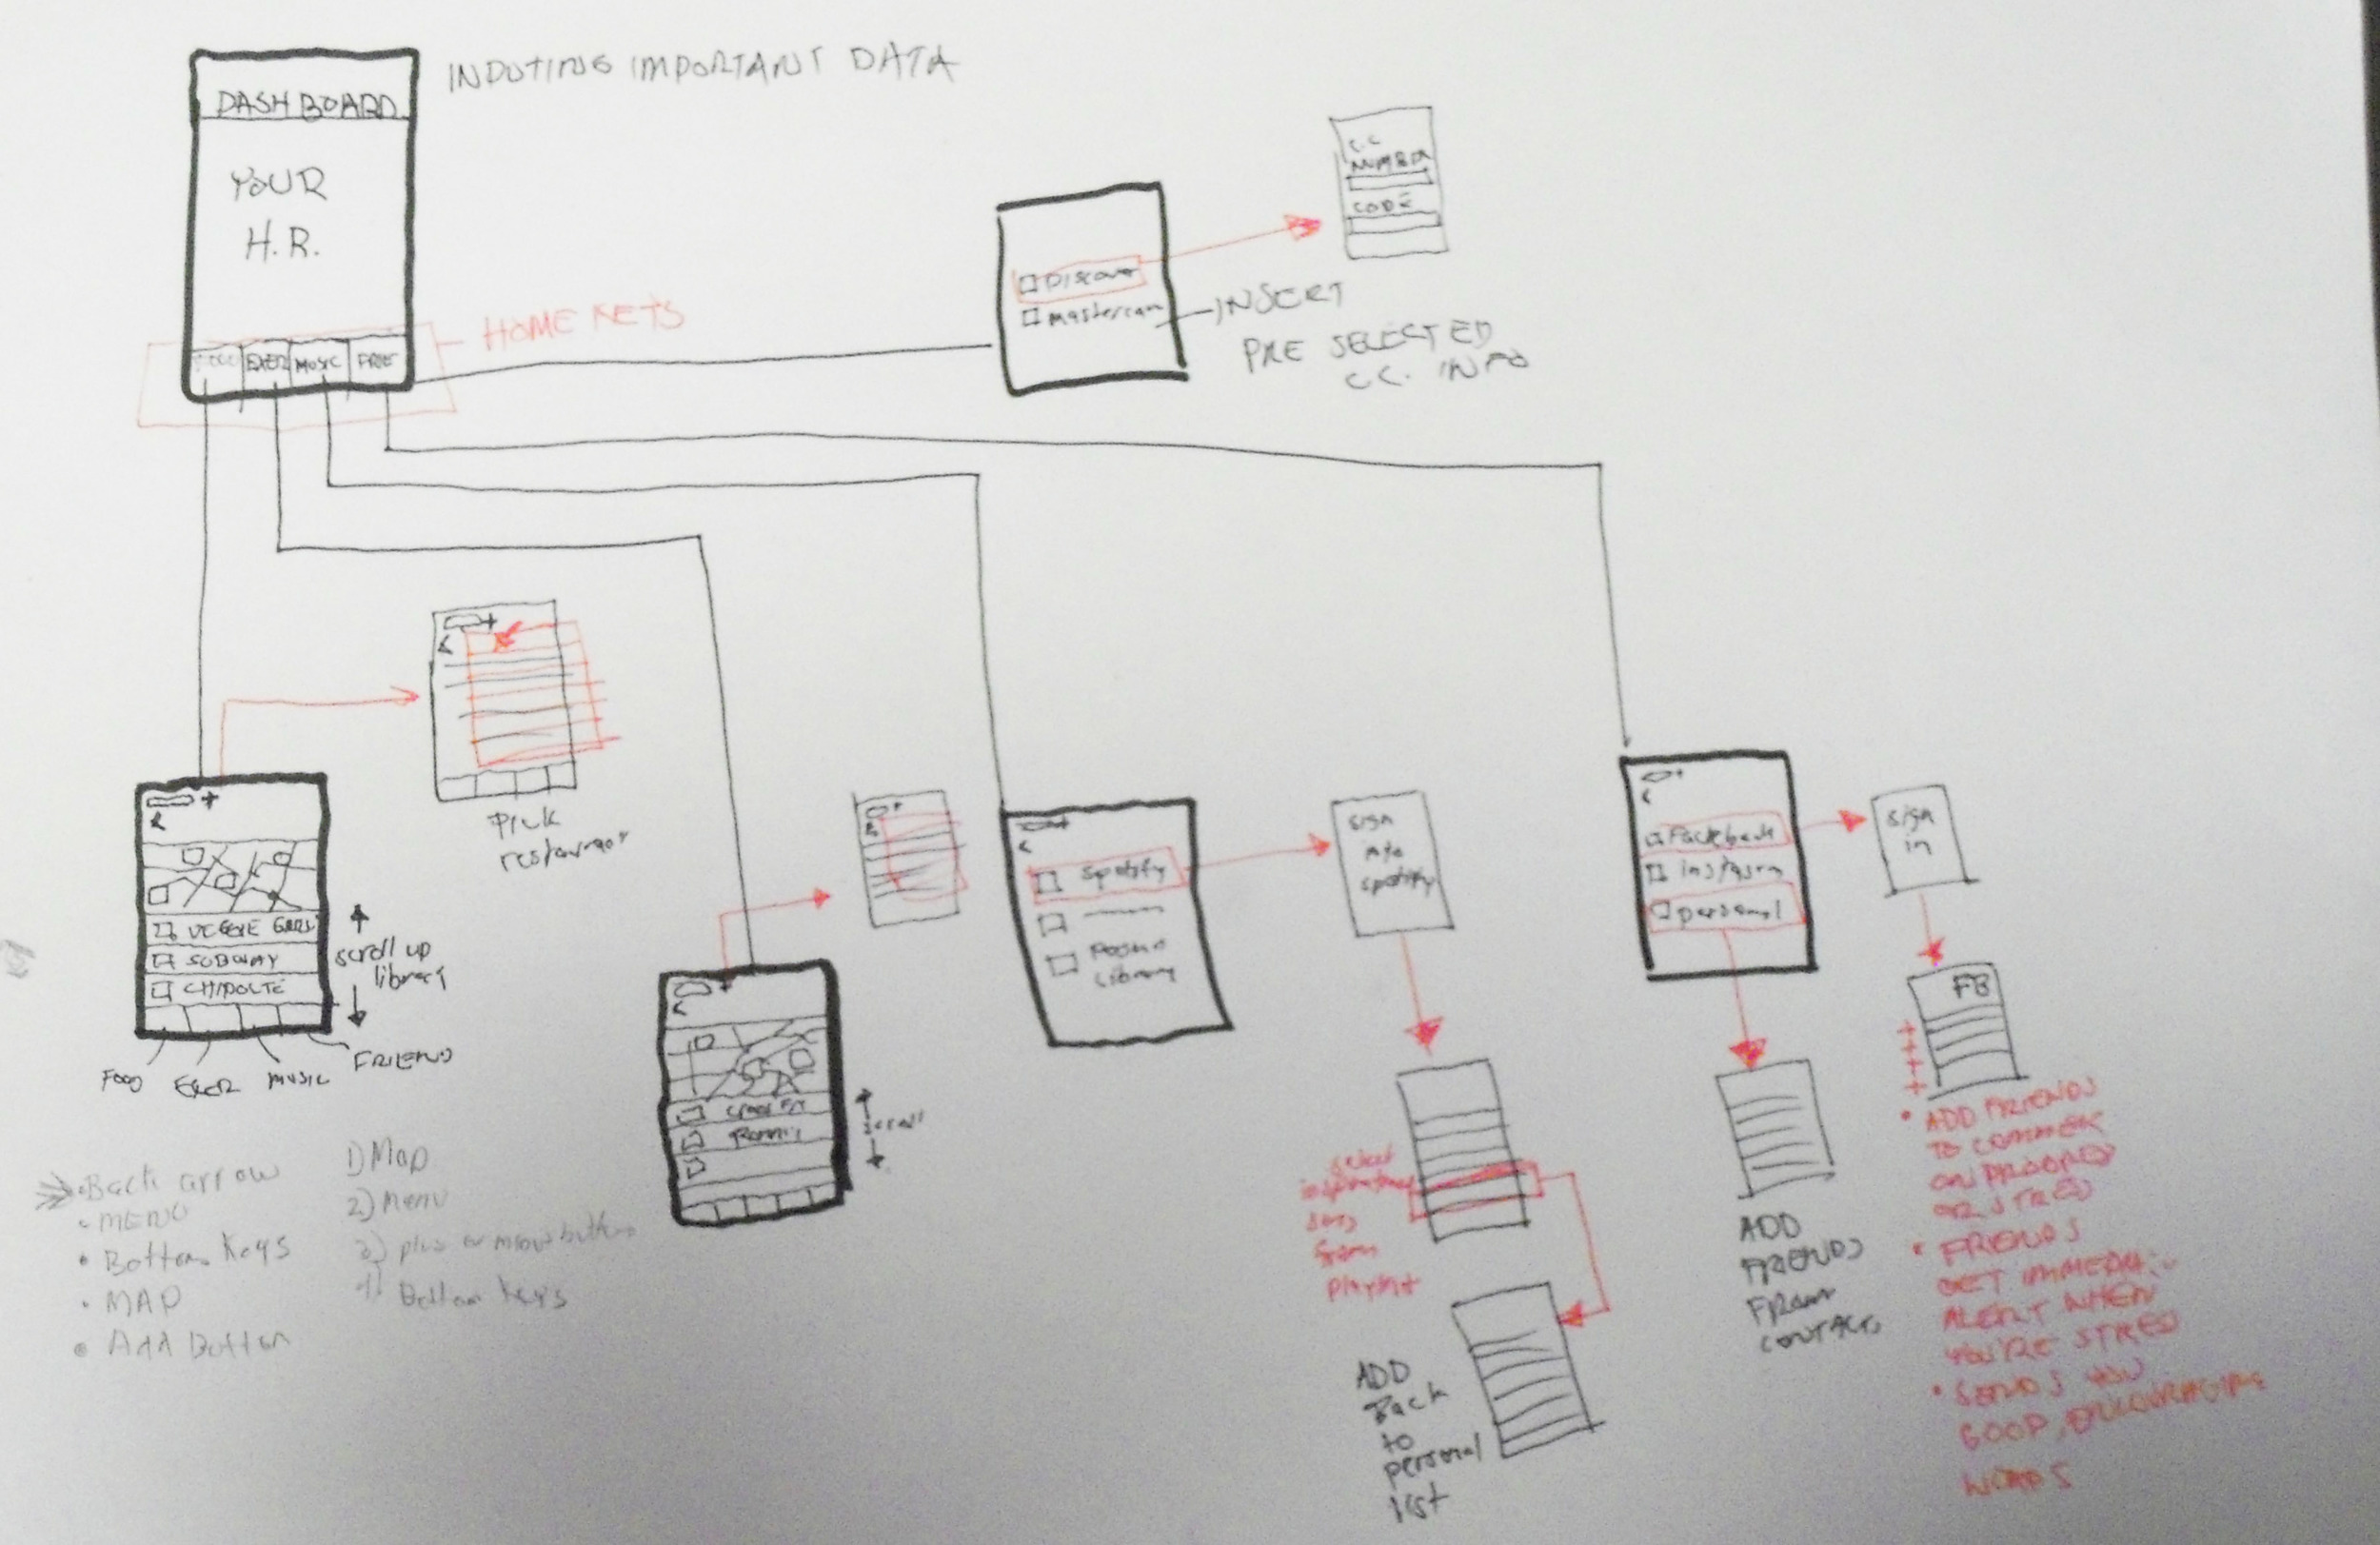 Process Dashboard with 5 activities